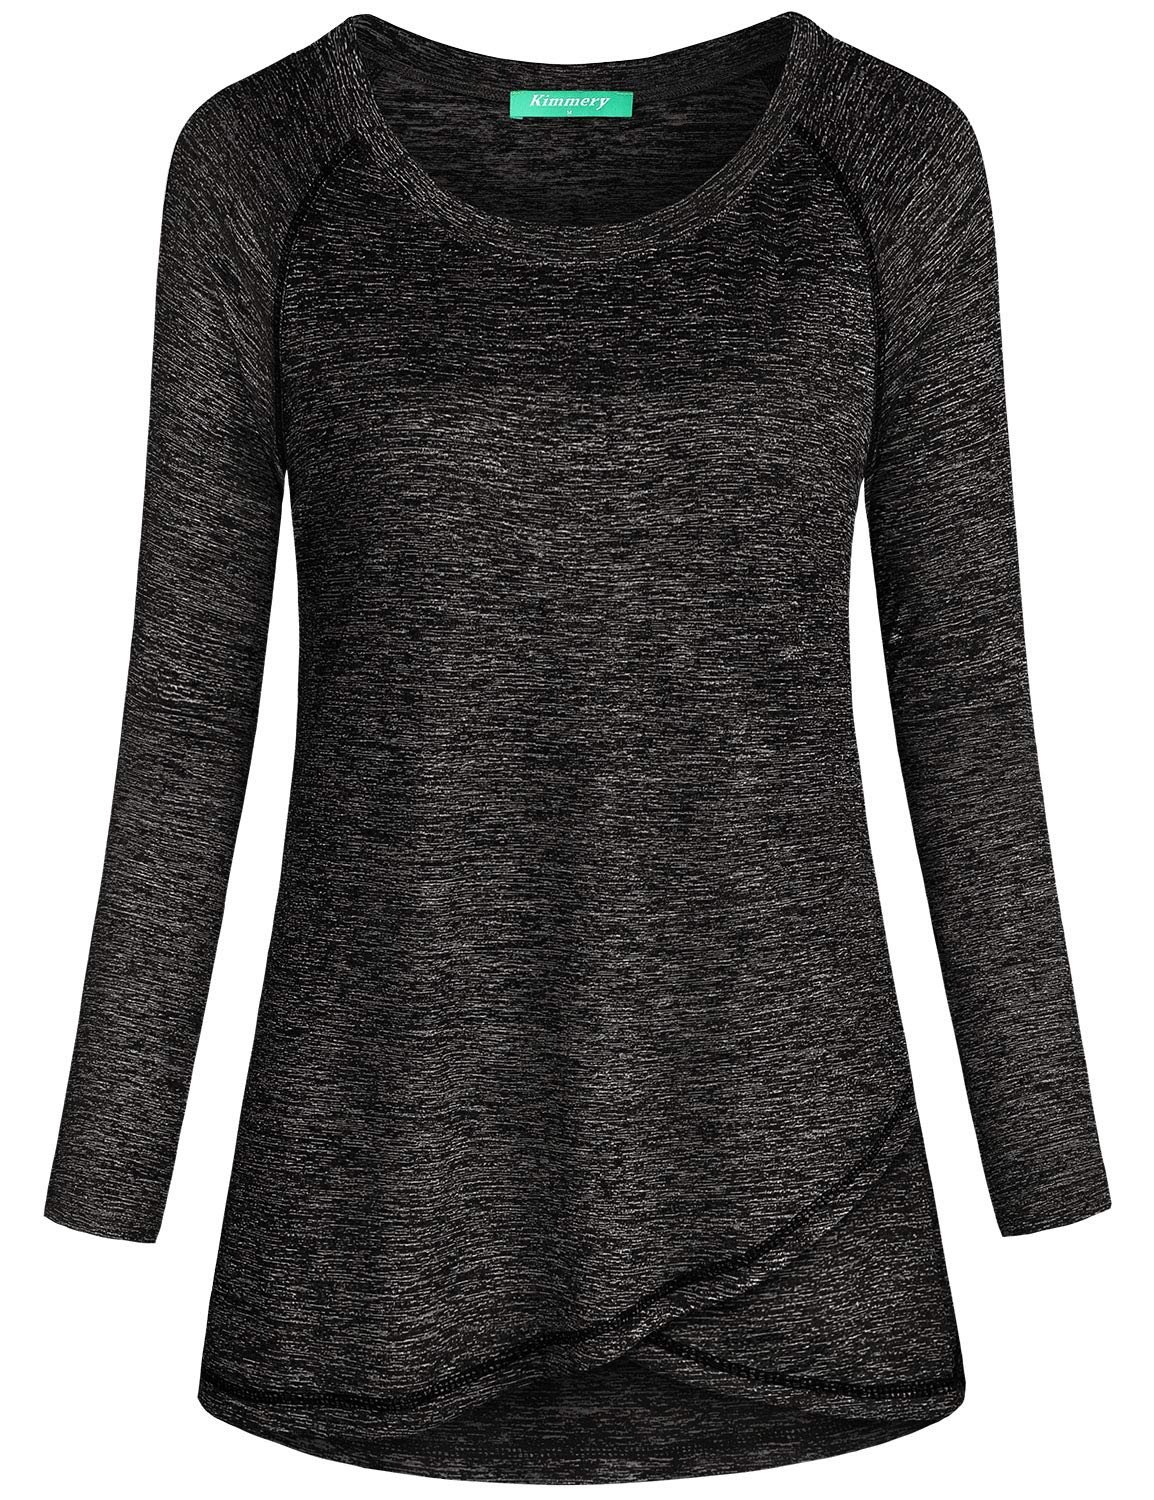 Kimmery Long Sleeve T Shirt Women, Black Melange Scoop Neck Flattering Drape Tunic Feminine Fit Cool Dri Tech Activewear Ventilated Cross Training Gym Yoga Football Indoors Outdoors Casual Tops Medium